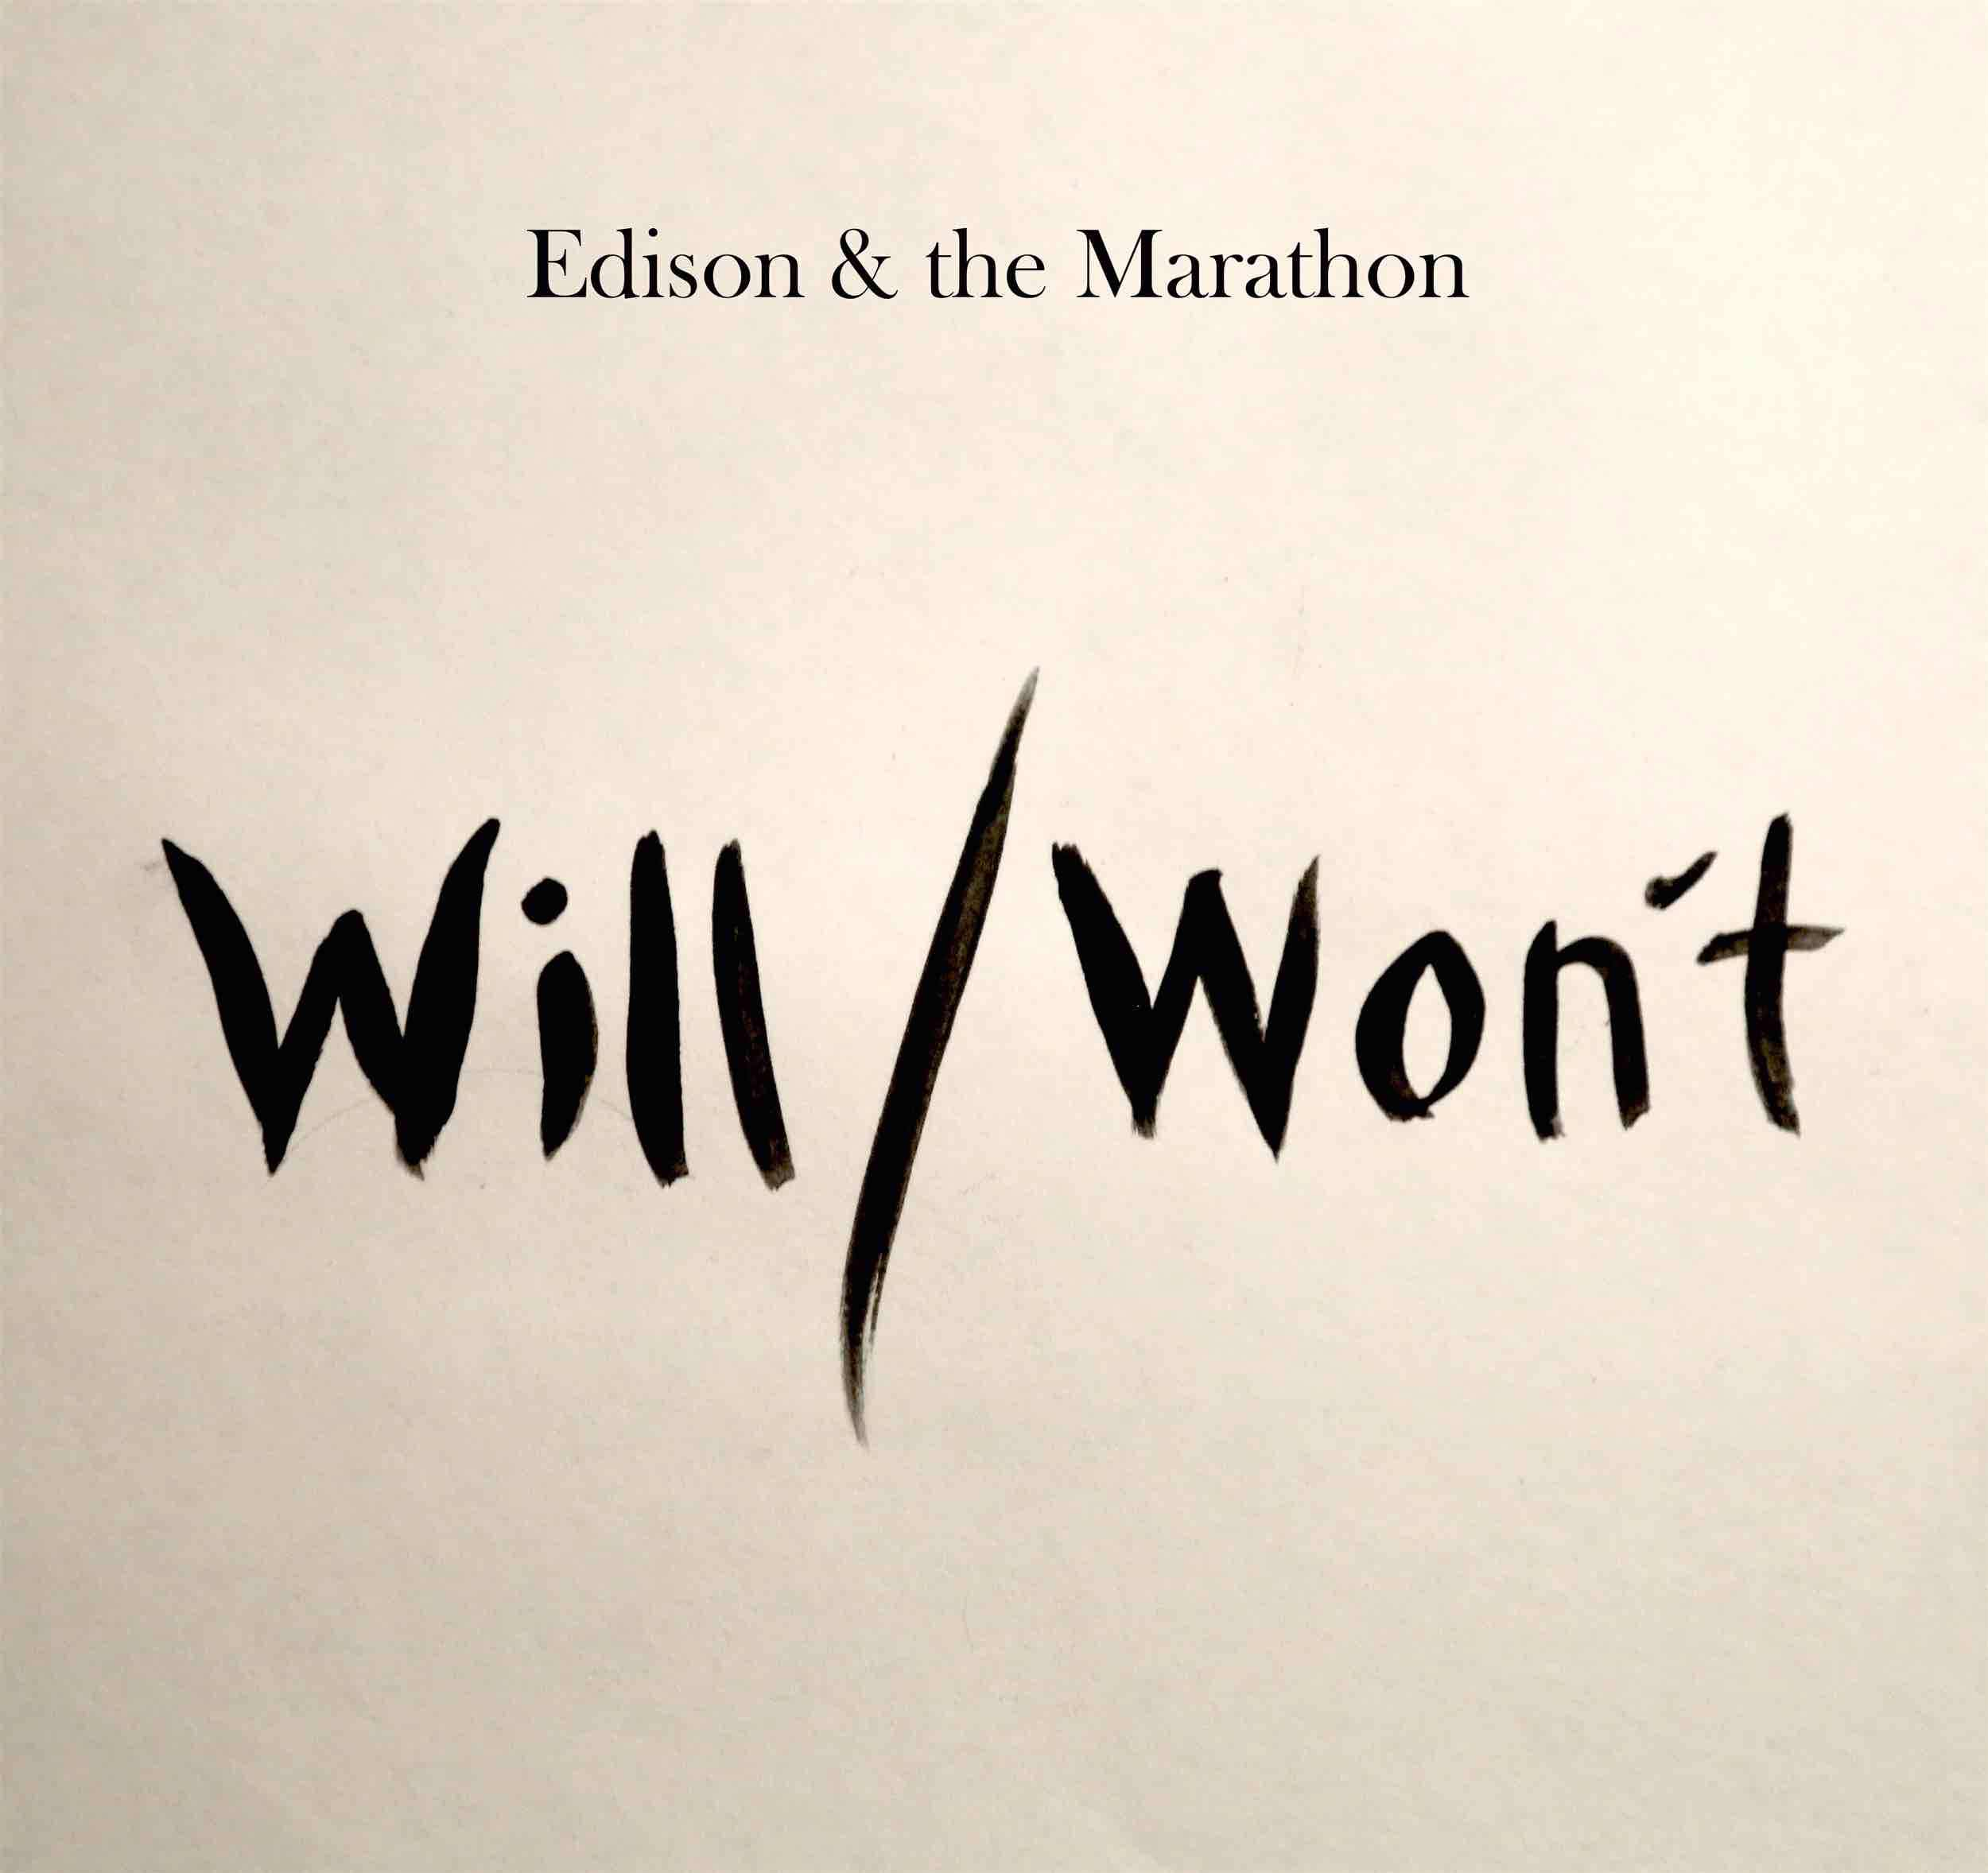 Edison & the Marathon - Will/Won't